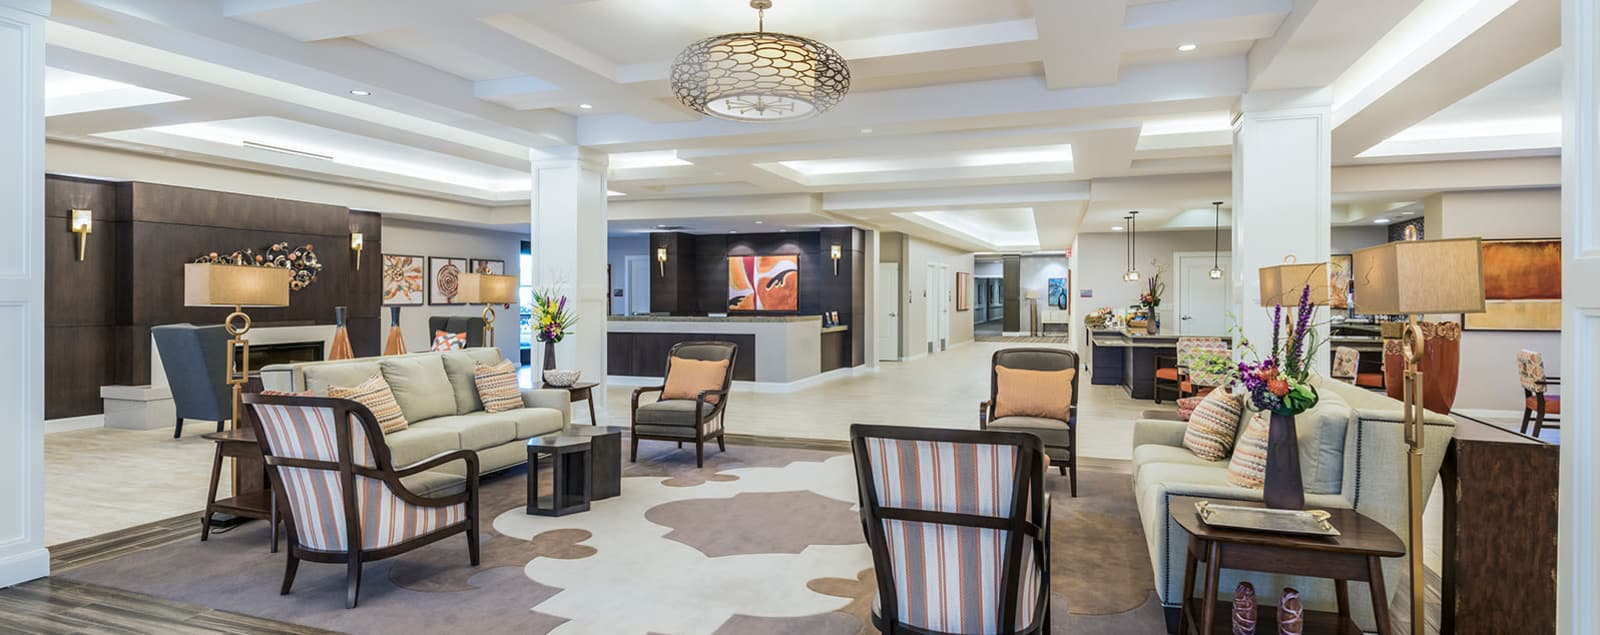 Photo gallery of Senior Living in Southlake